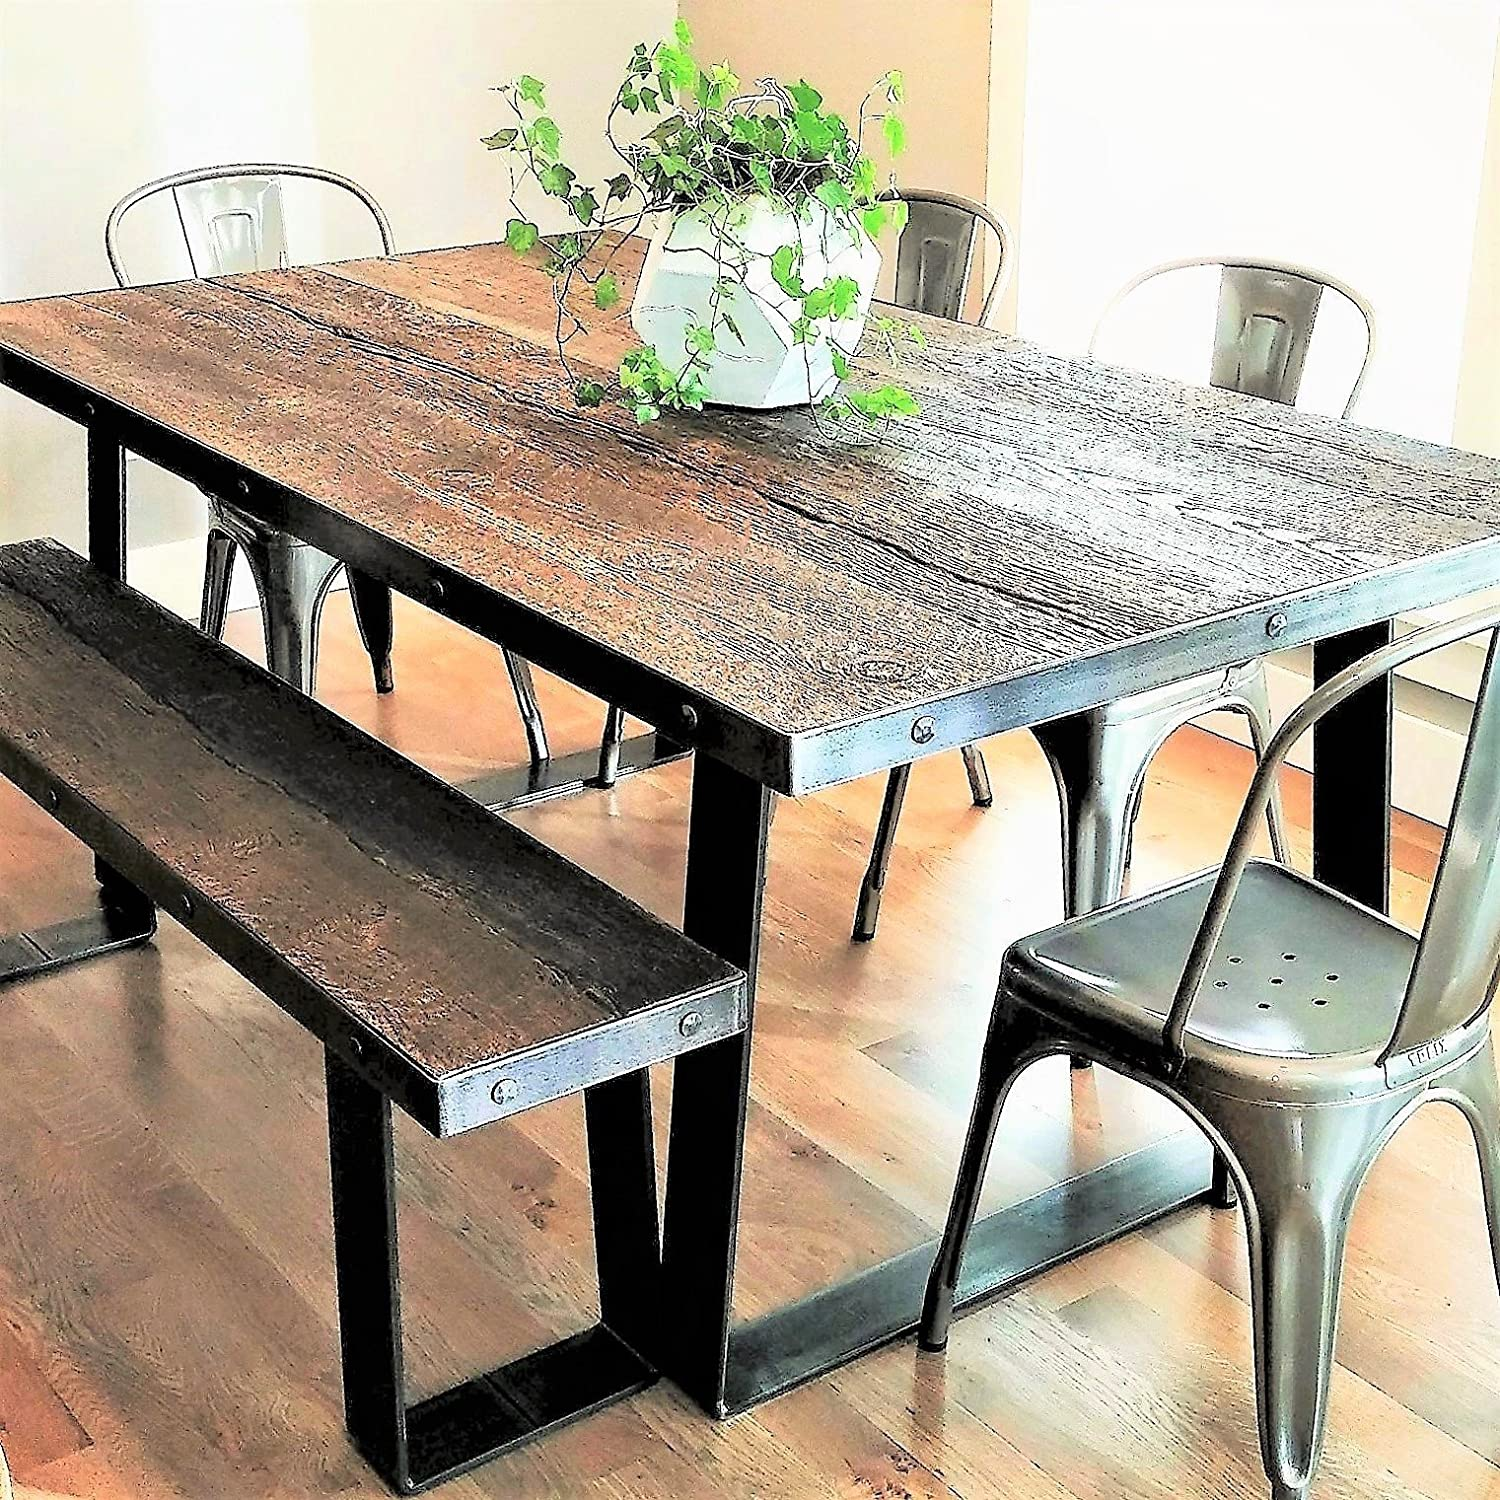 Awe Inspiring Amazon Com Cement Faux Wood 6 Foot Dining Table Bronze Caraccident5 Cool Chair Designs And Ideas Caraccident5Info